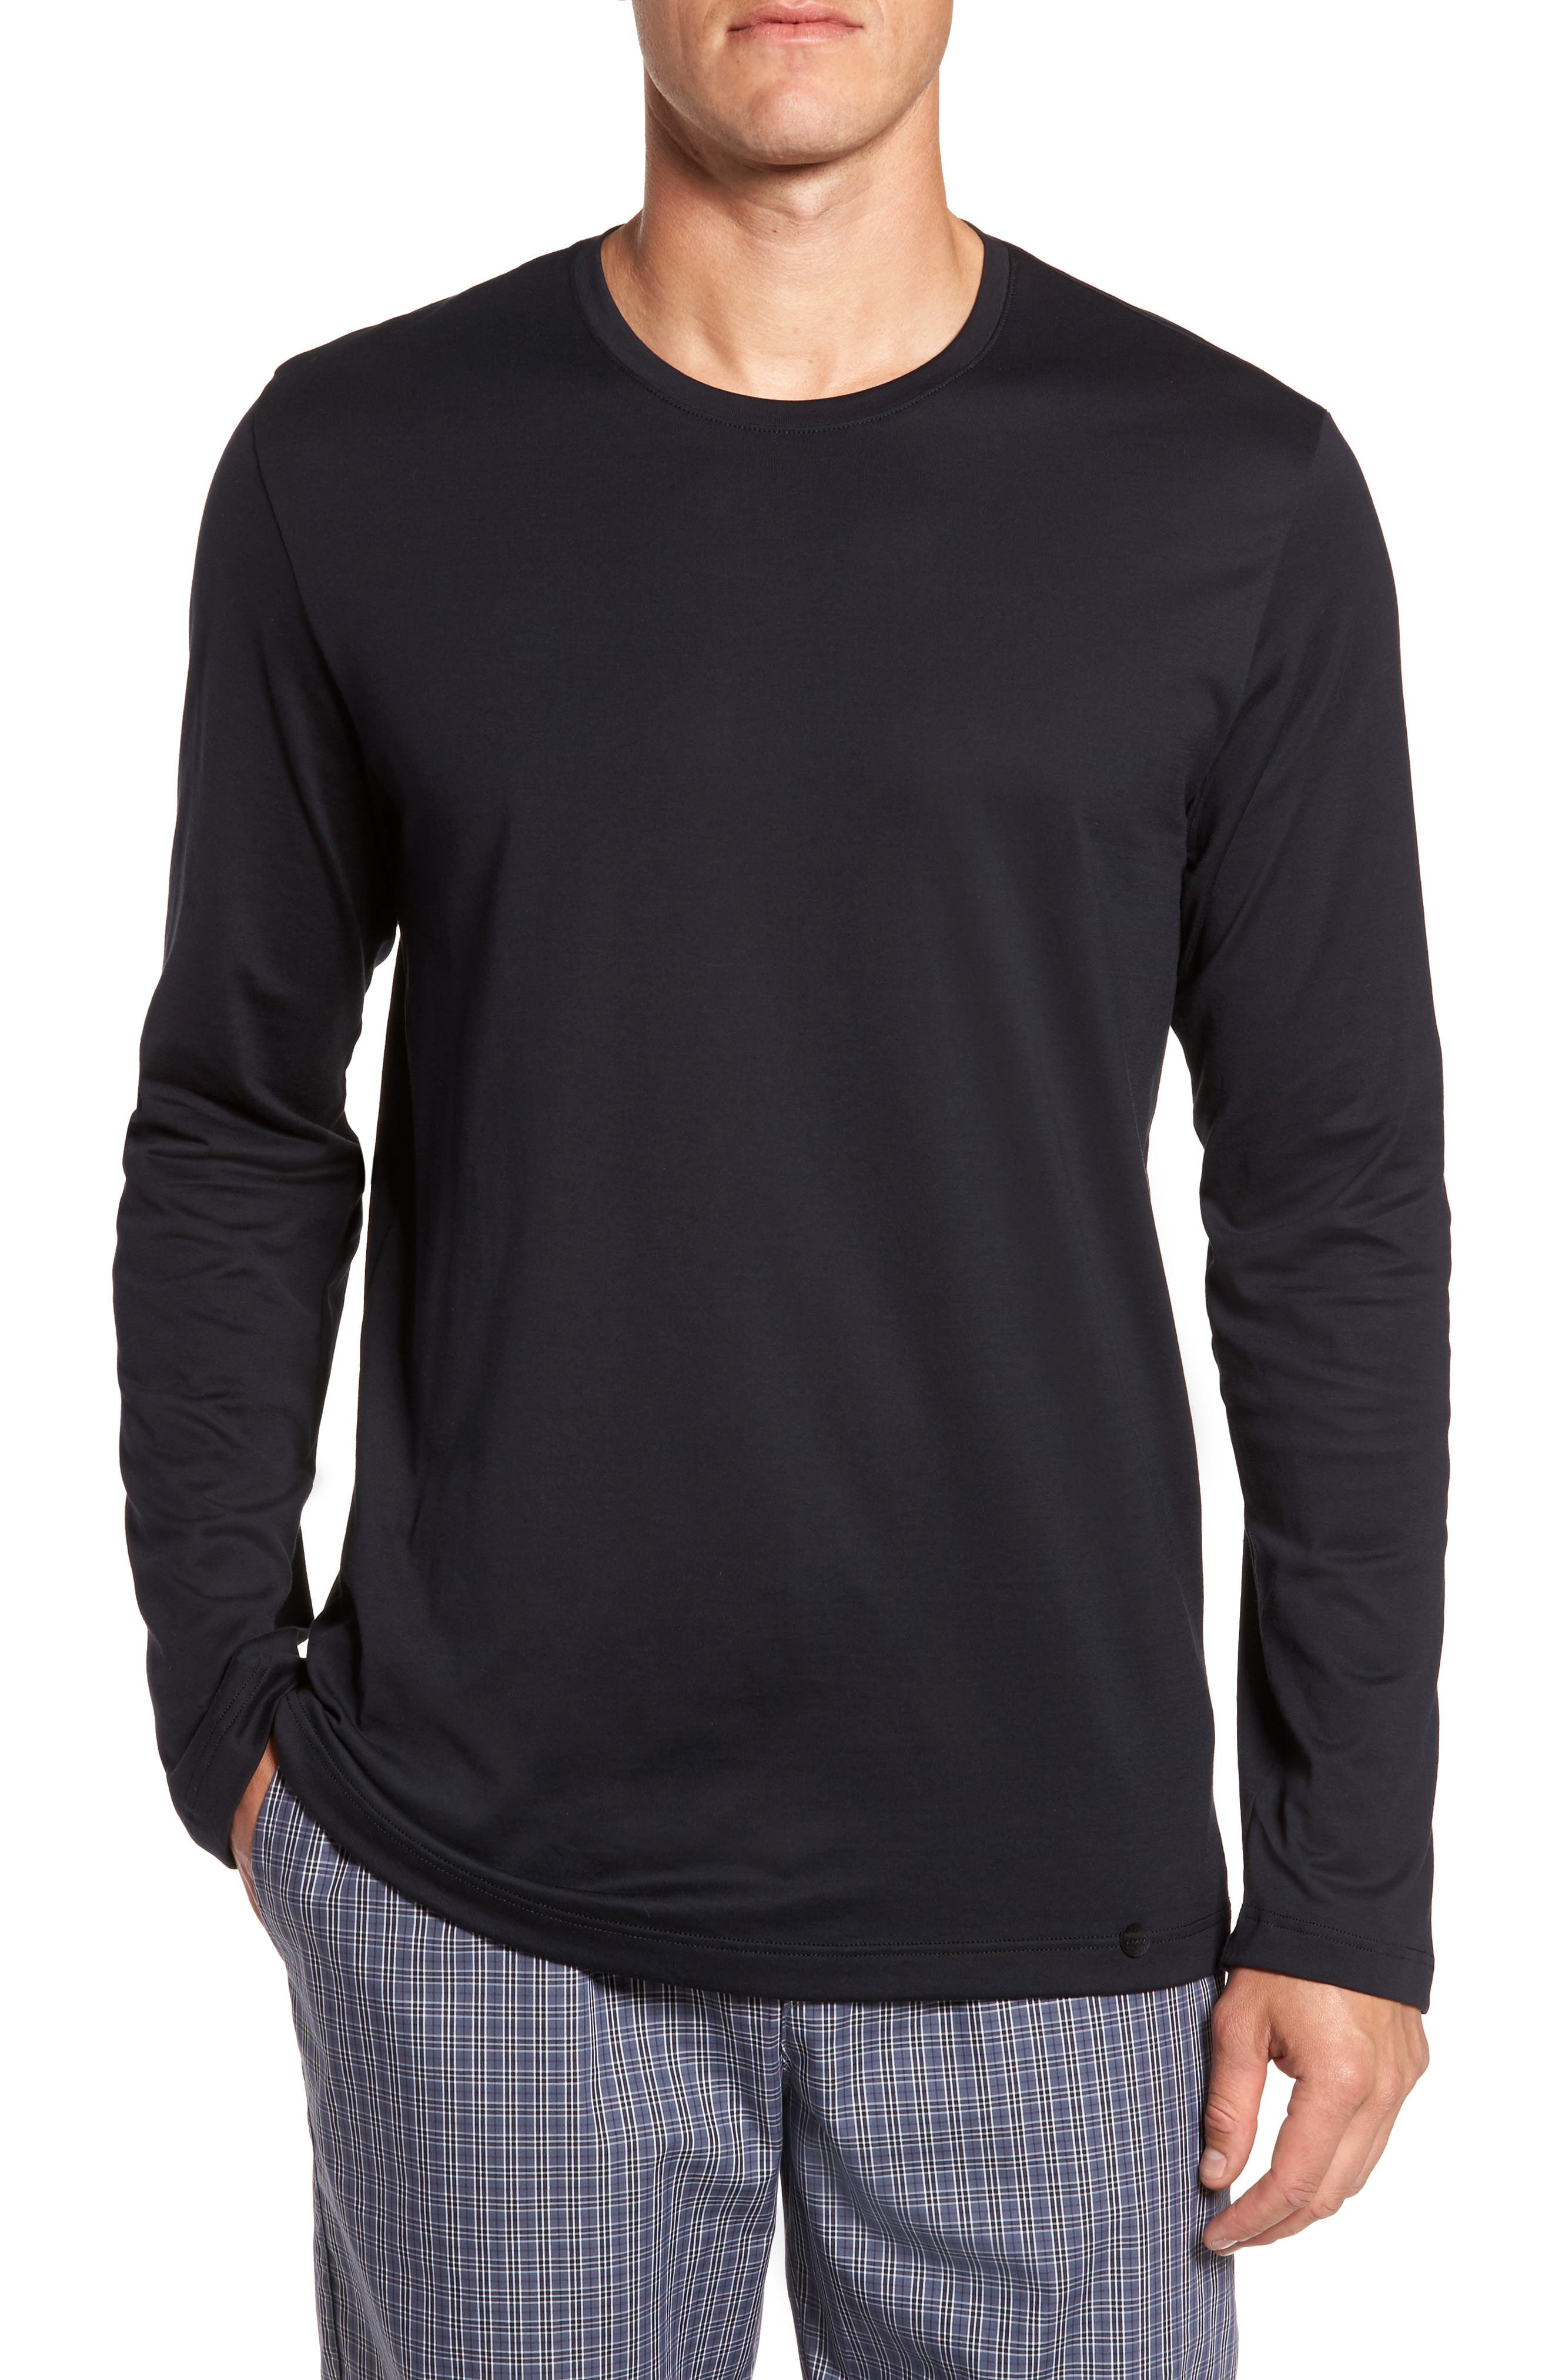 Night & Day Lounge T-Shirt,                         Main,                         color, Black